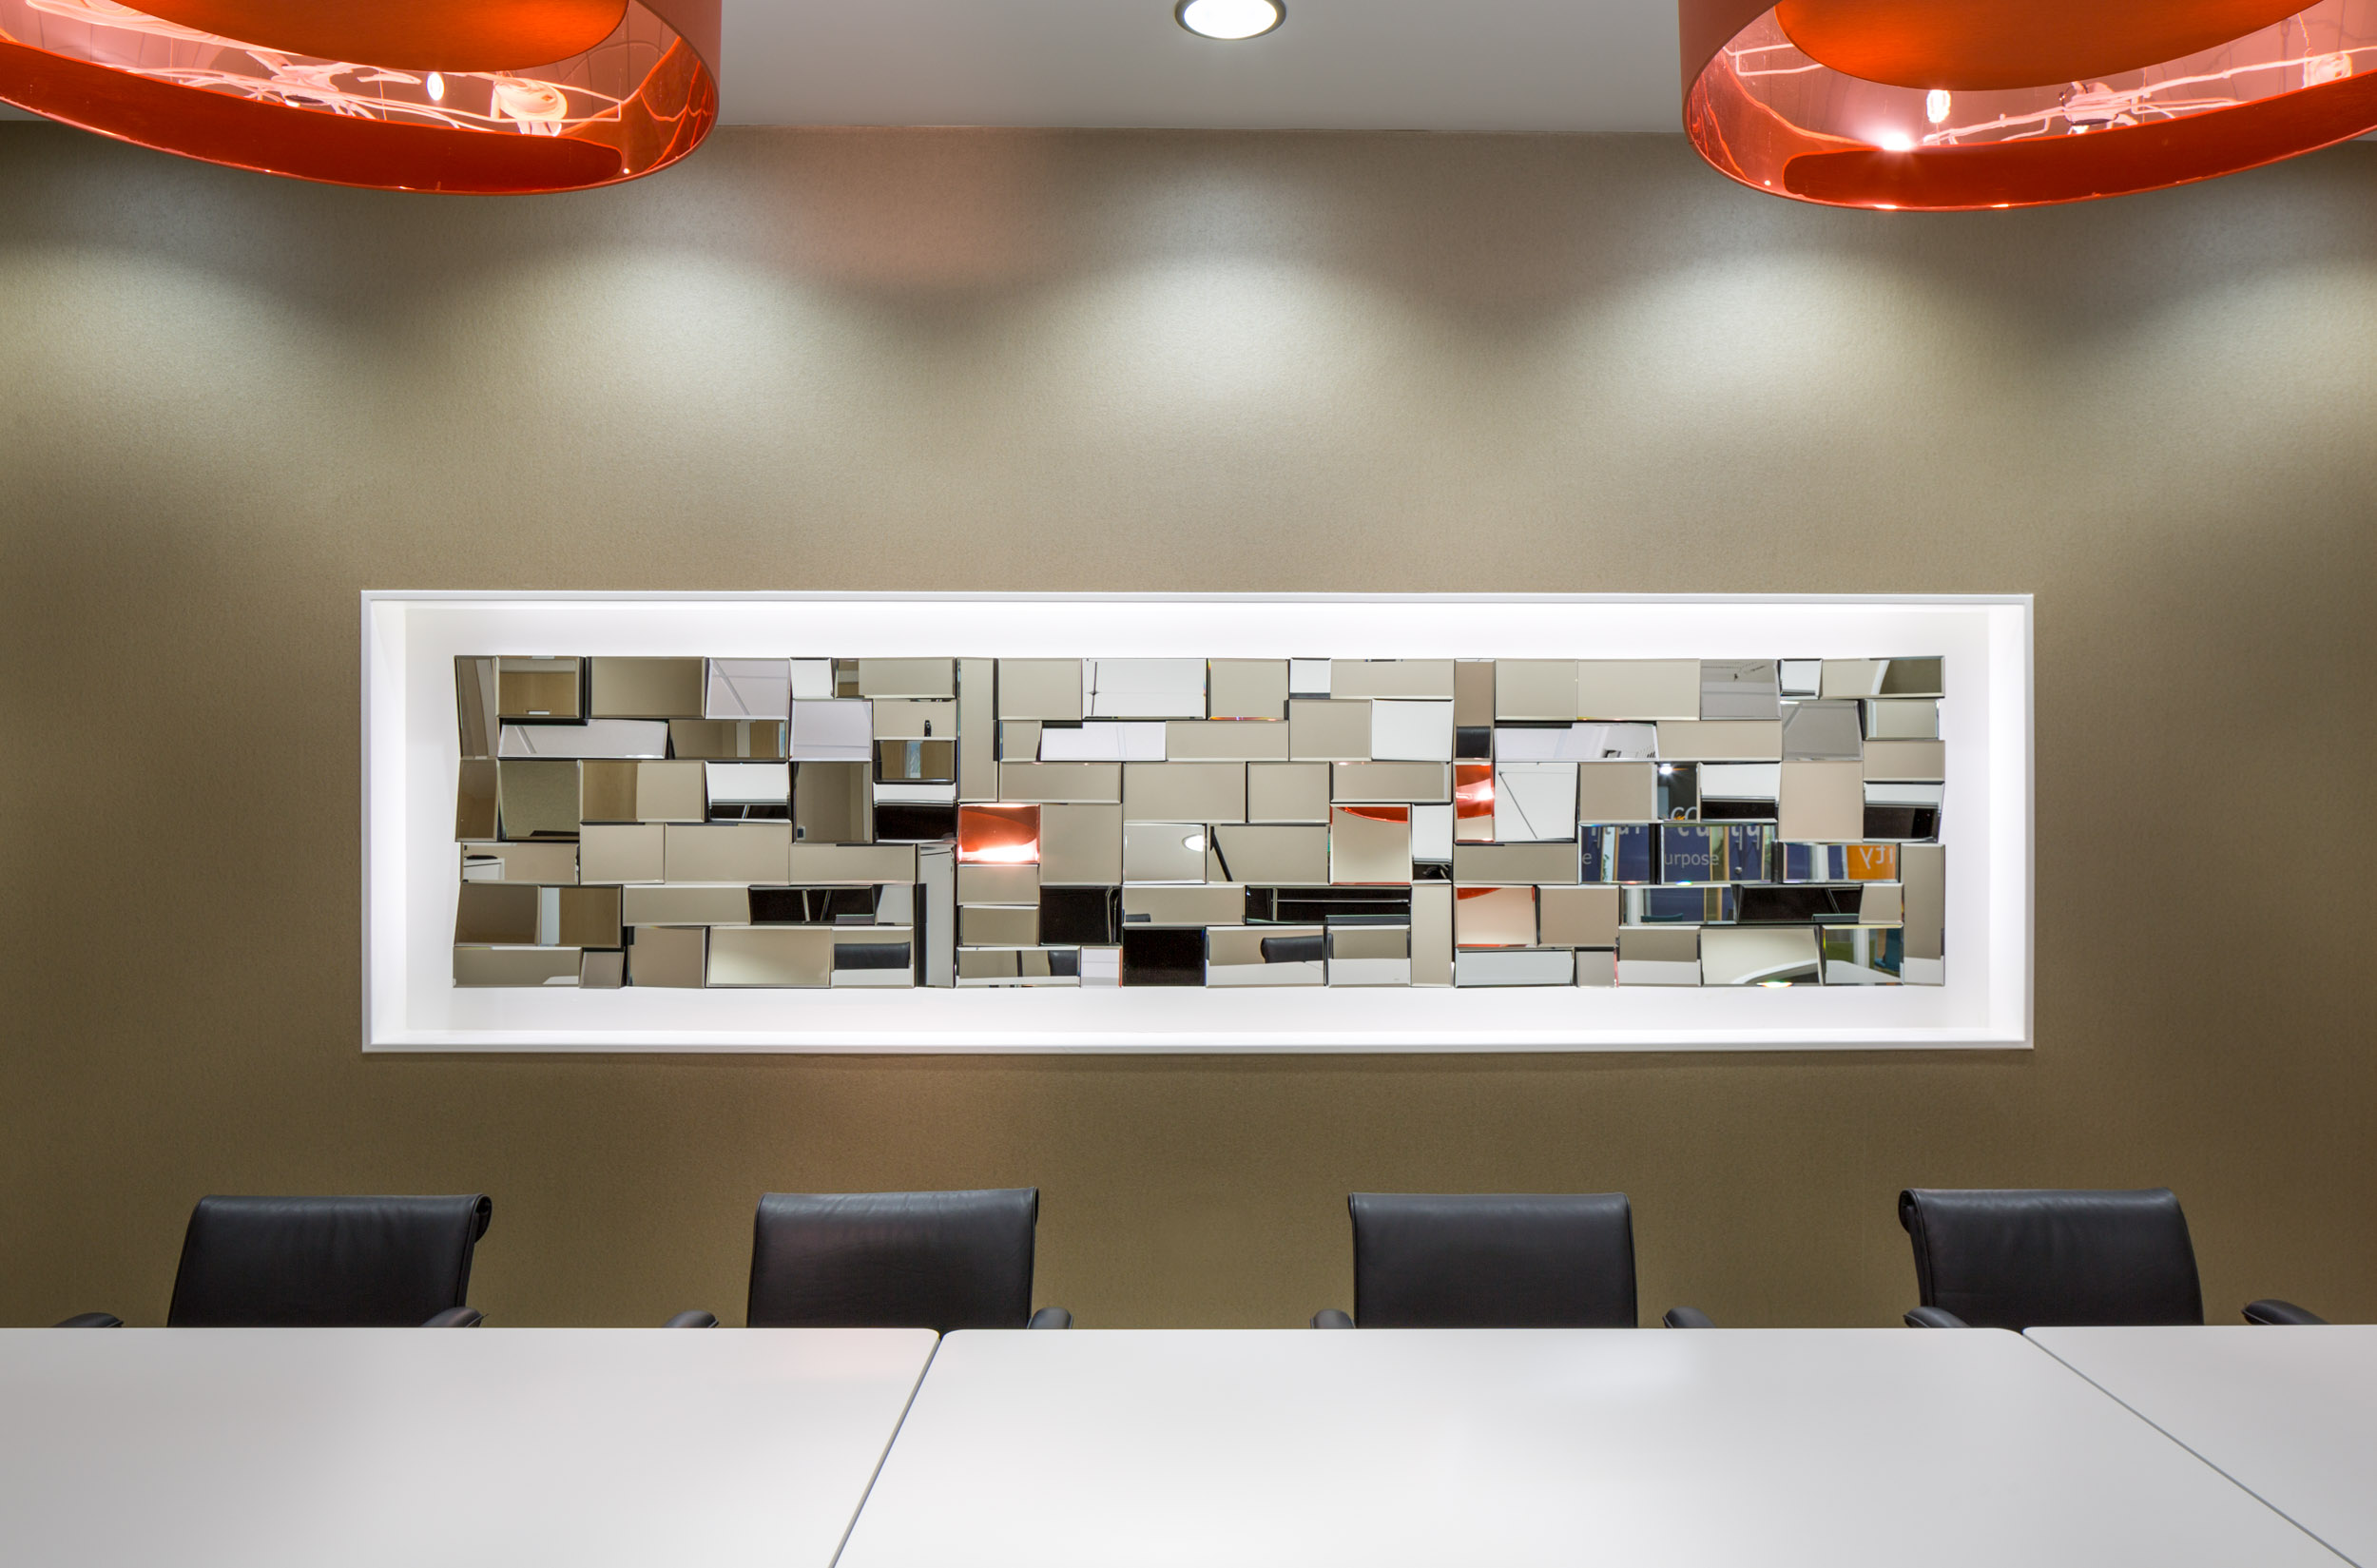 dale office architectural interior boardroom sheffield.jpg